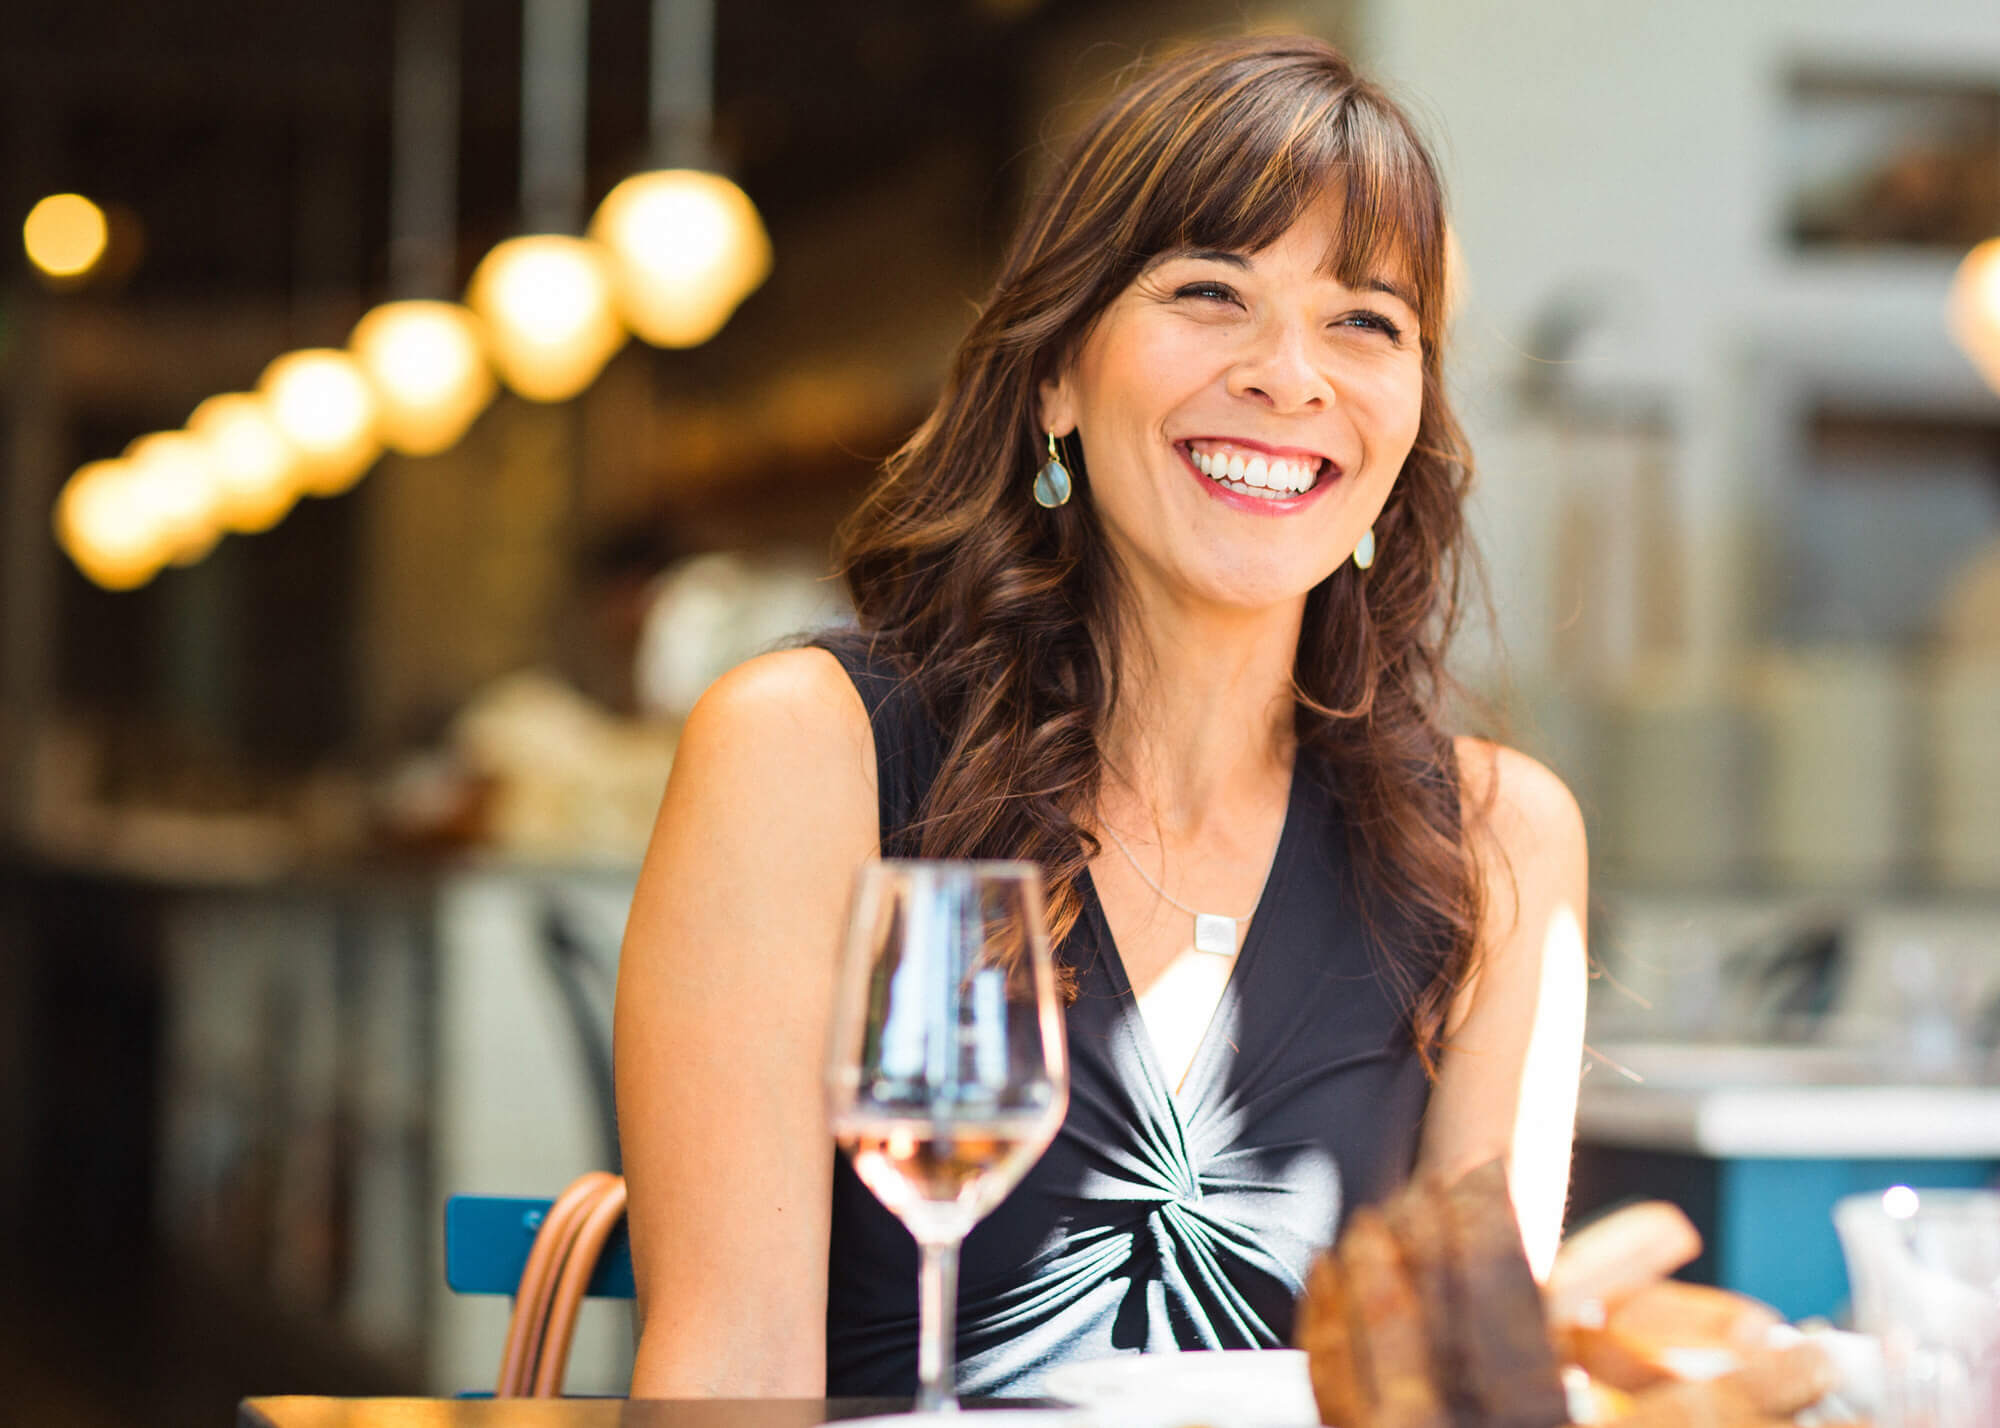 Woman with wine glass on restaurant patio